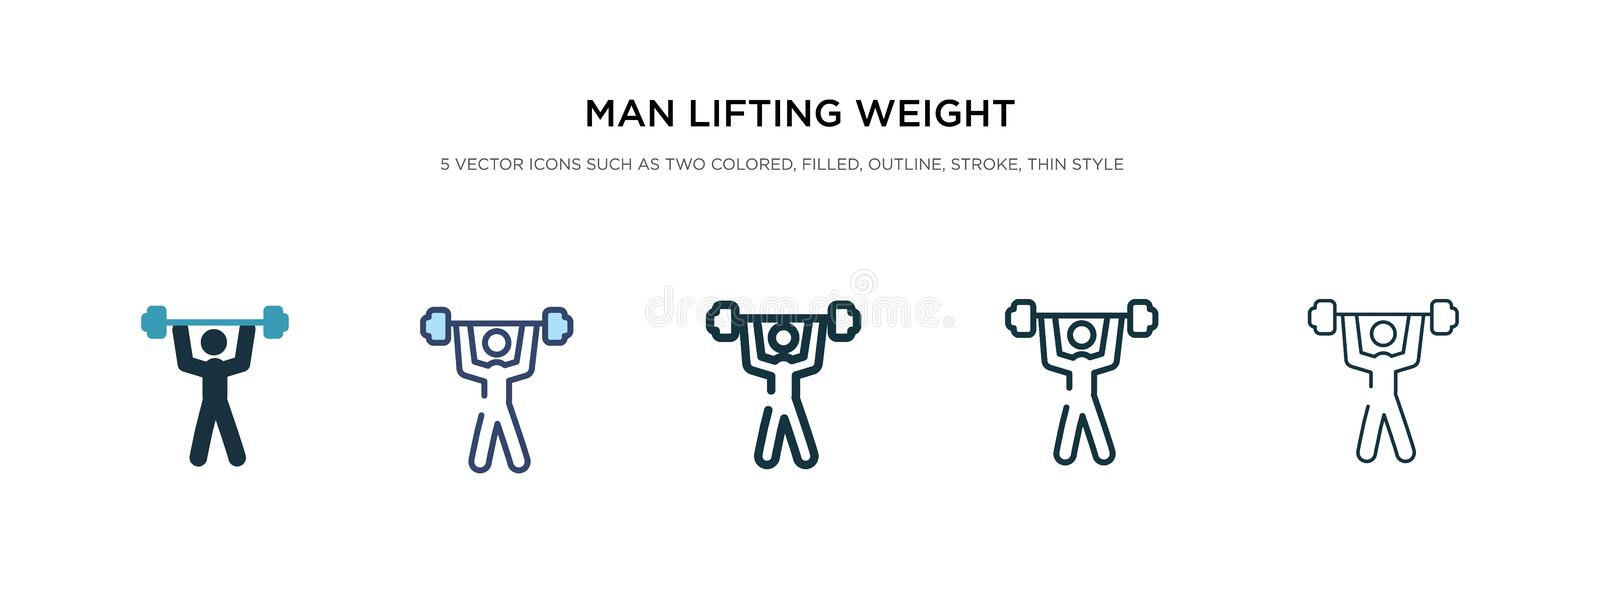 Man lifting weight icon in different style vector illustration. two colored and black man lifting weight vector icons designed in royalty free illustration